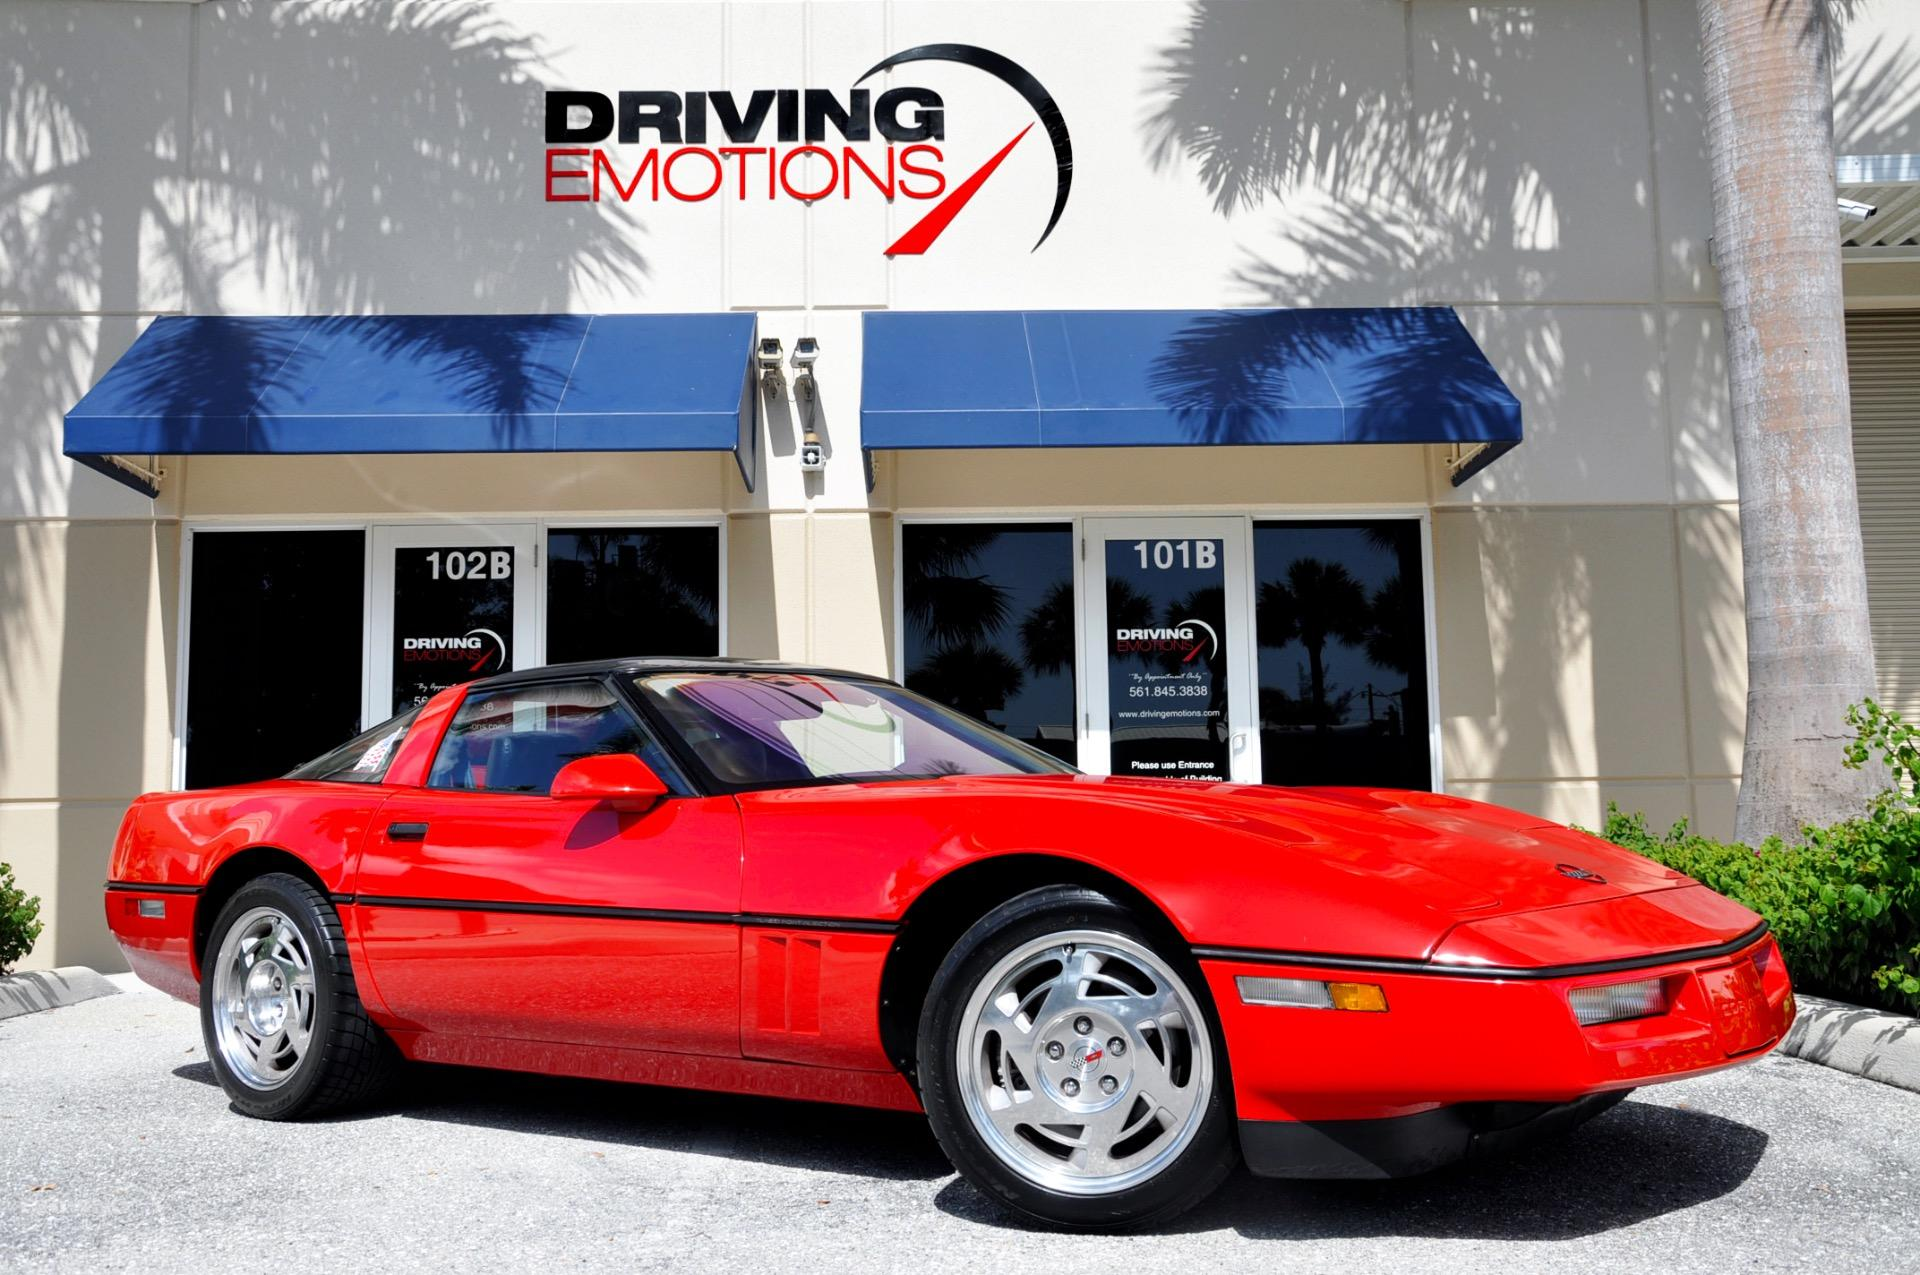 1990 Chevrolet Corvette Zr1 1990 Chevrolet Corvette Zr1 Zr1 Stock 6058 For Sale Near Lake